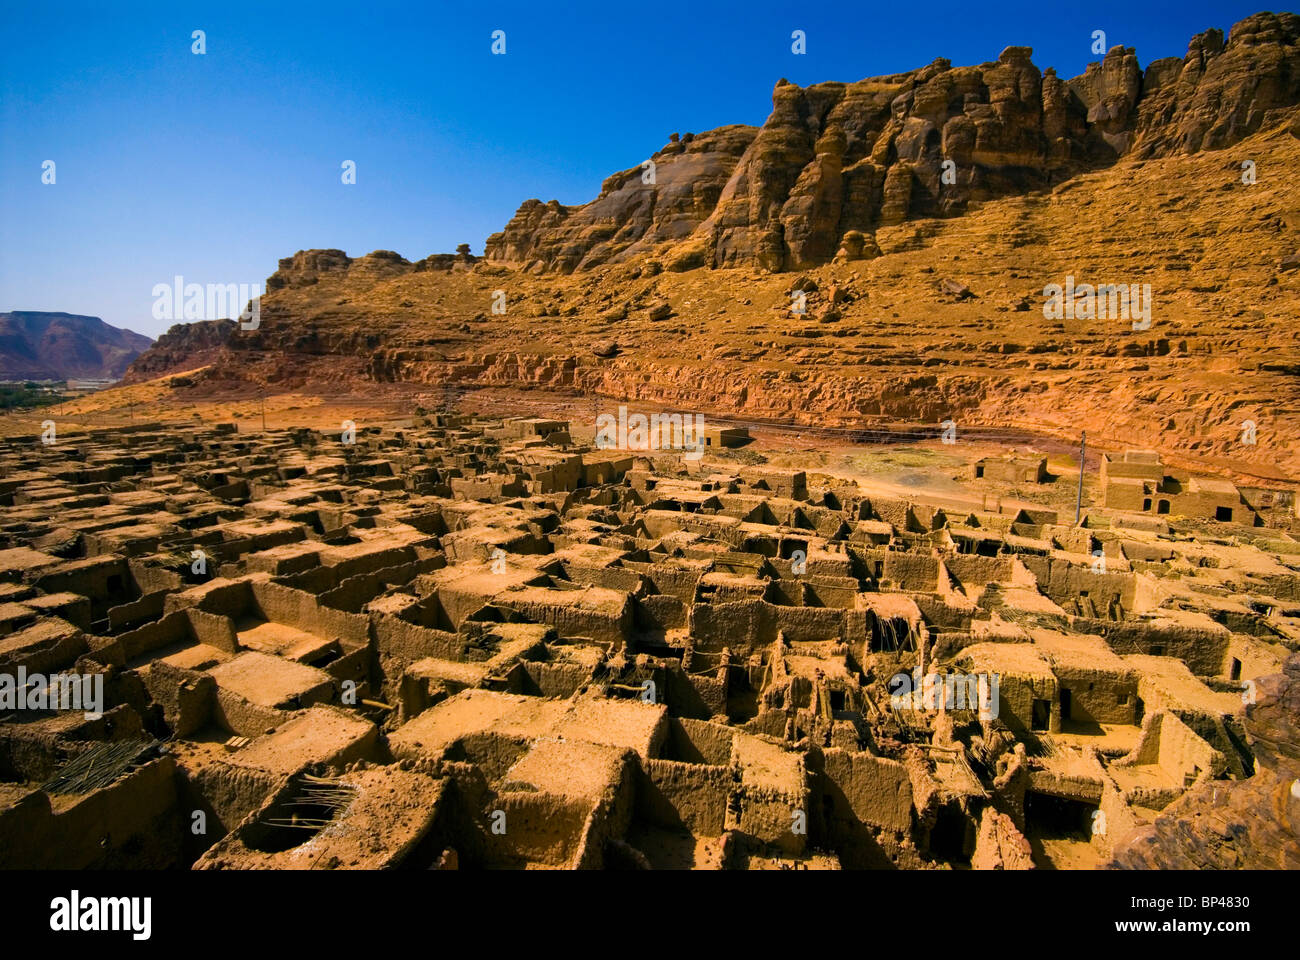 Saudi Arabia, Al-Ula, view of the old town, now abandoned - Stock Image